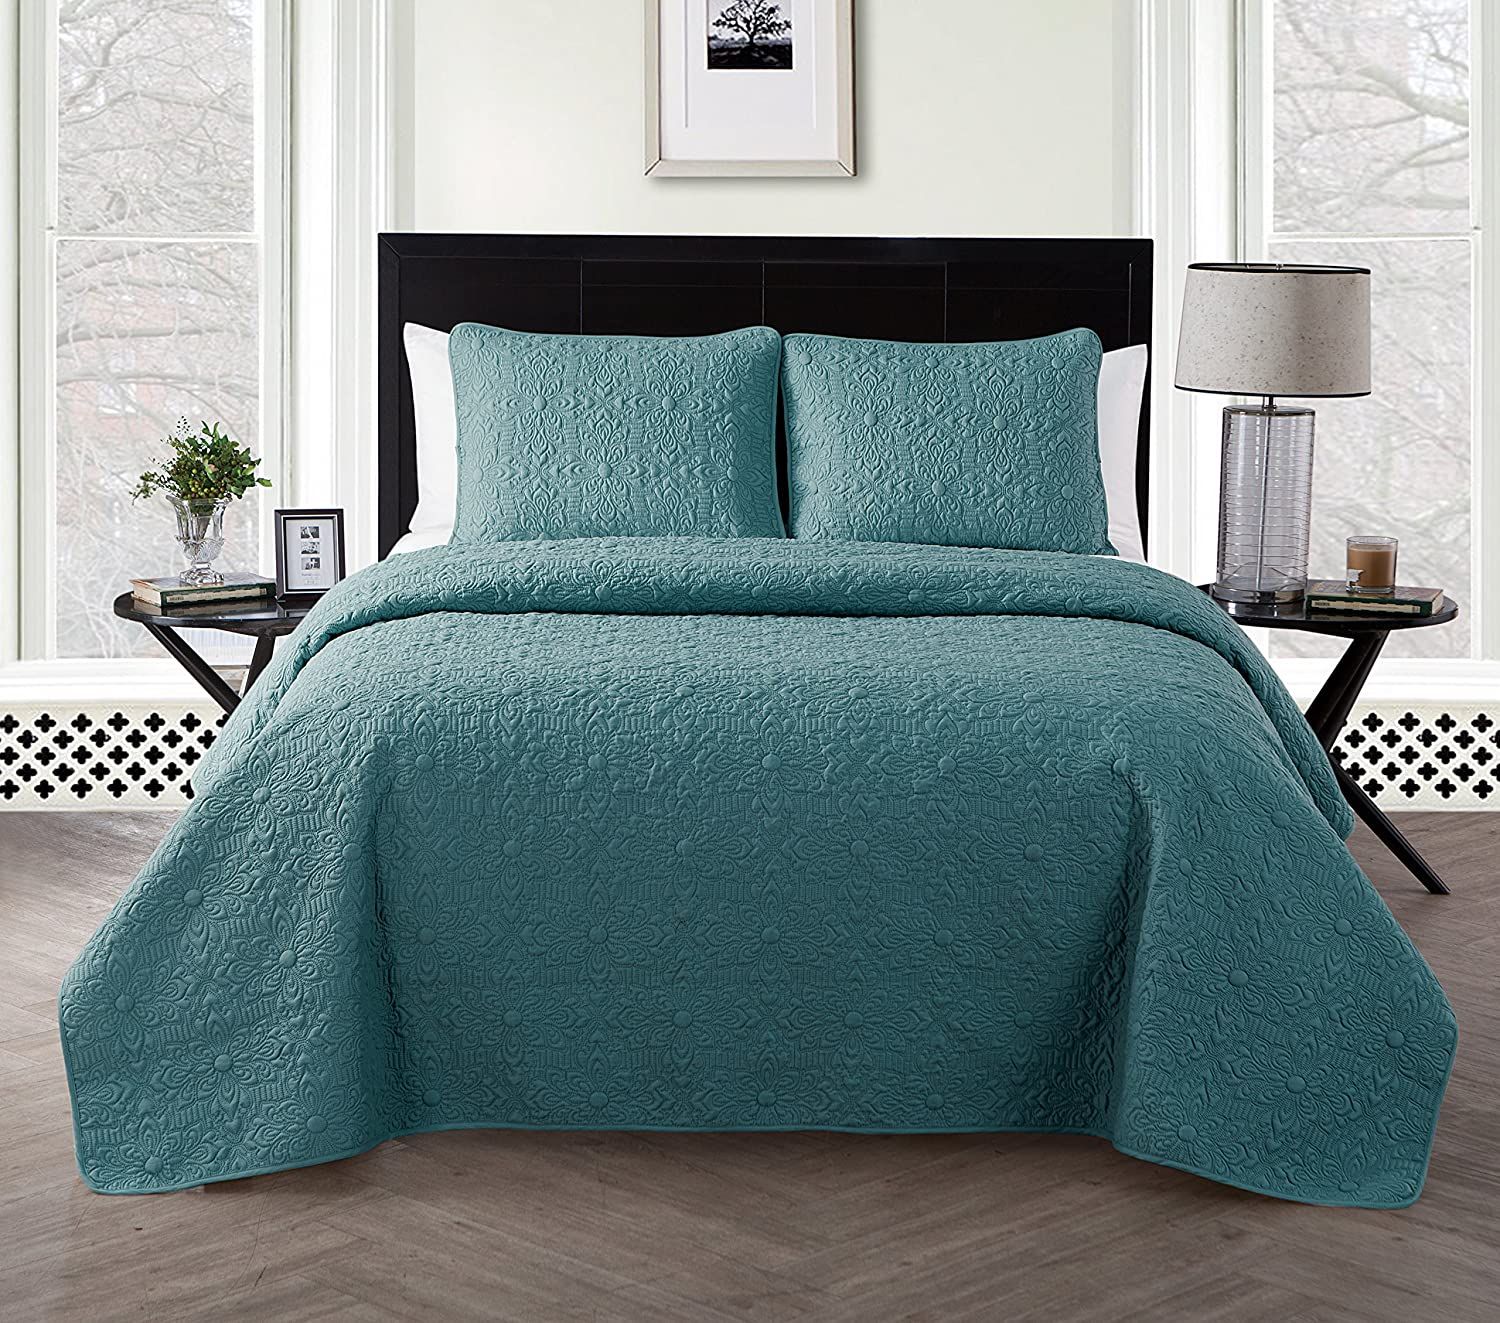 VCNY Home Caroline Embossed Floral 3 Piece Quilt Set, Full/Queen, Sage